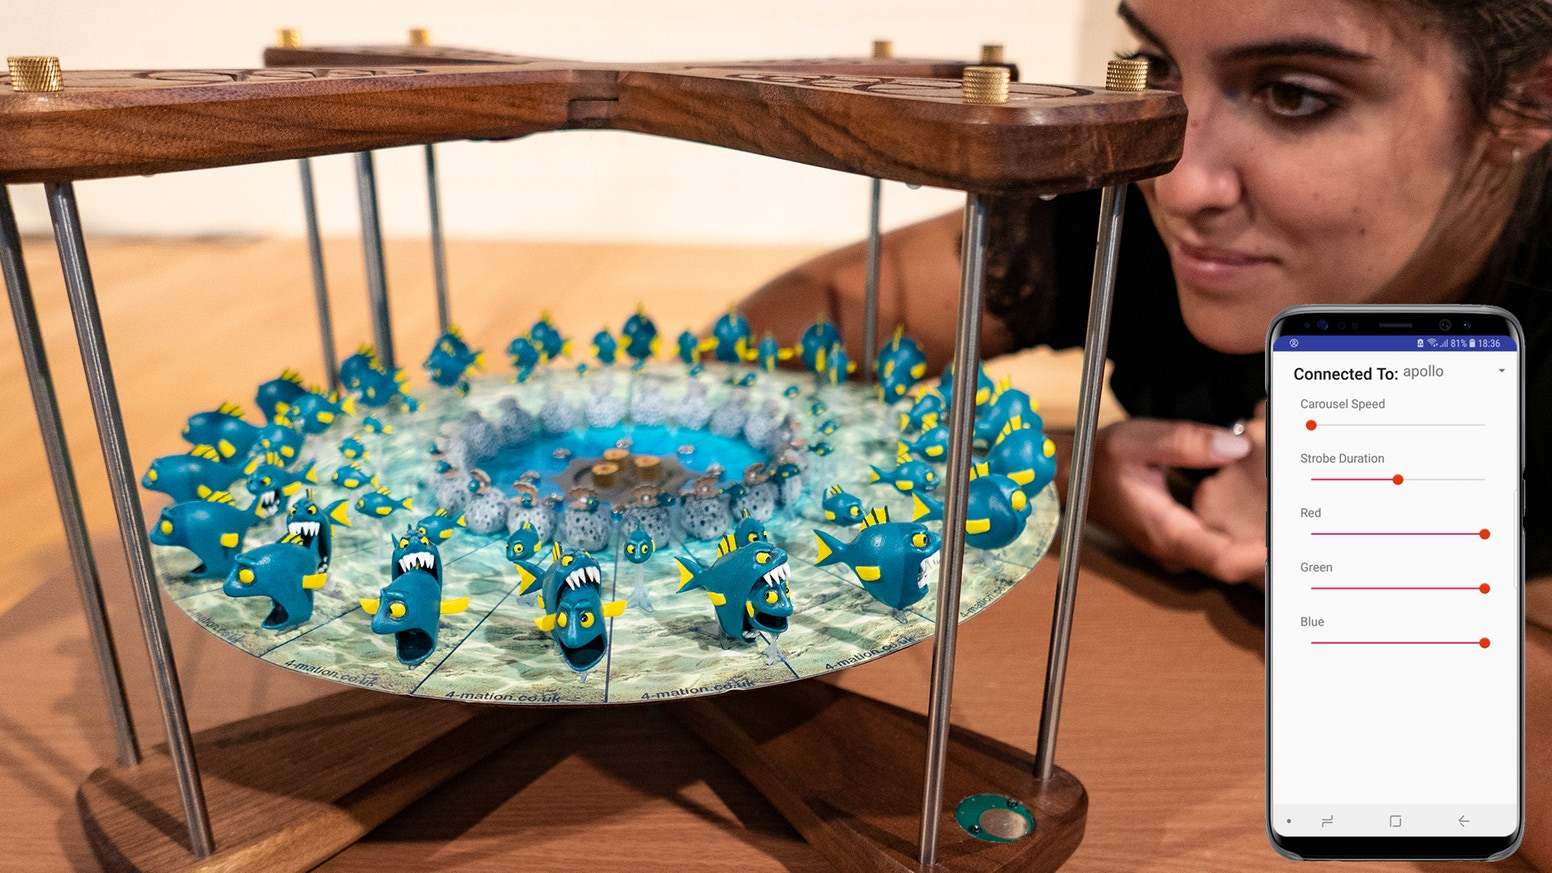 Create real magic with light. Inspire kids and adults alike with living stop-motion animations.